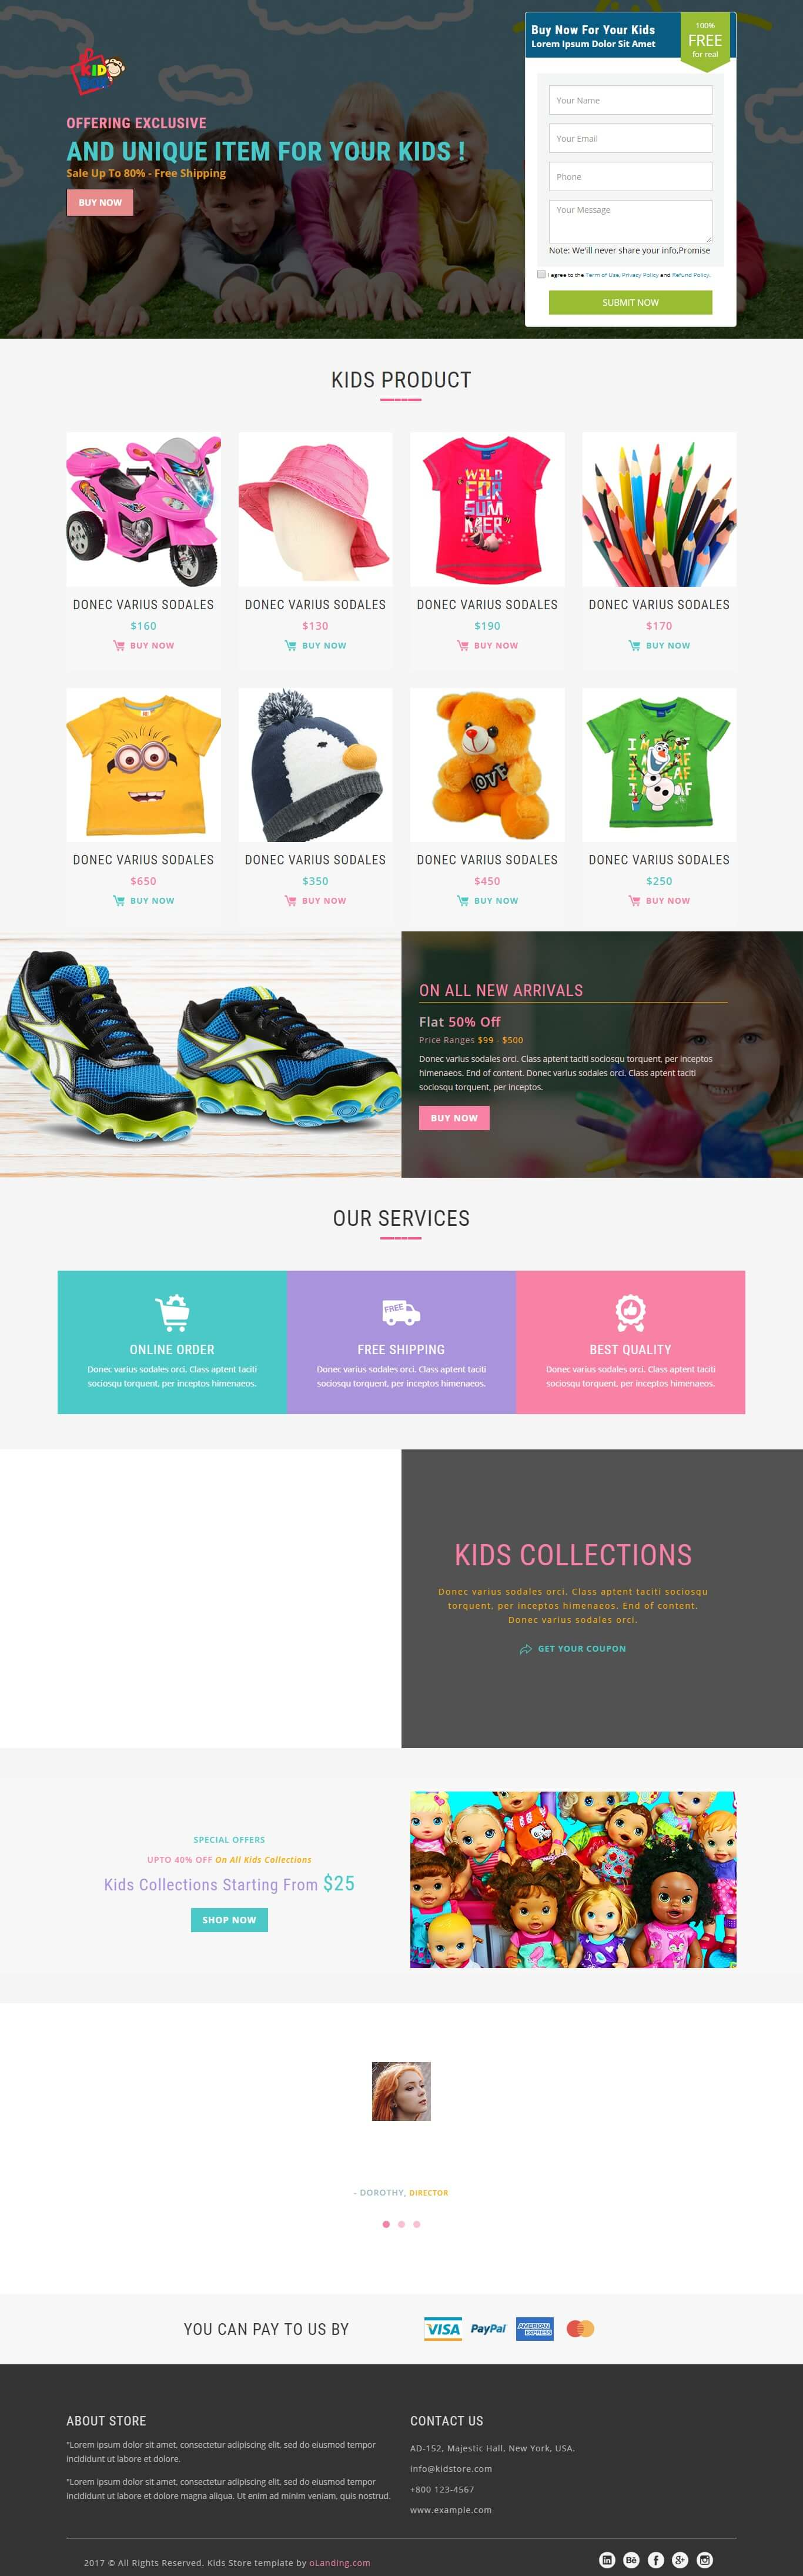 KidStore Baby Store HTML Landing Page Template OLanding - Buy landing page template